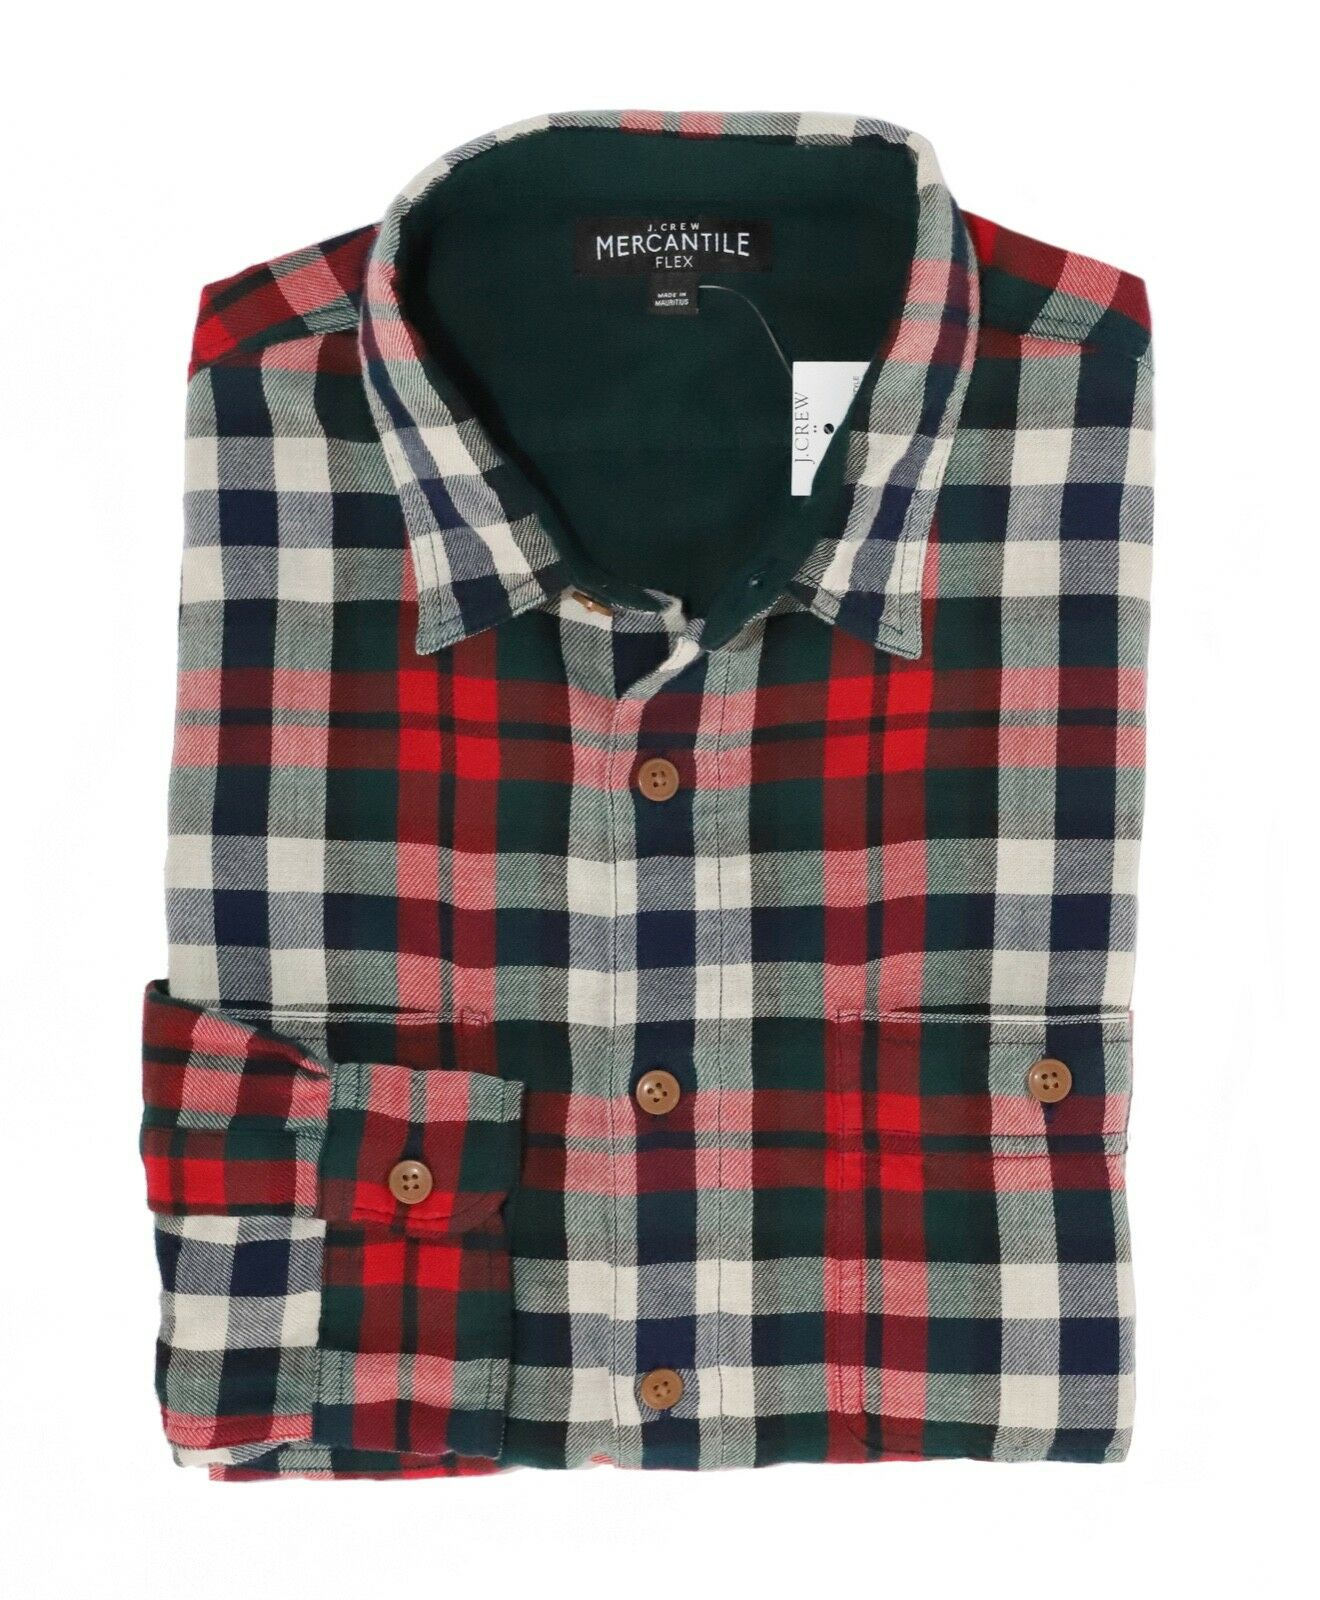 0e02f67e5c J.Crew Mercantile Mens XL Slim Fit Navy Red Double Layer Flannel ...